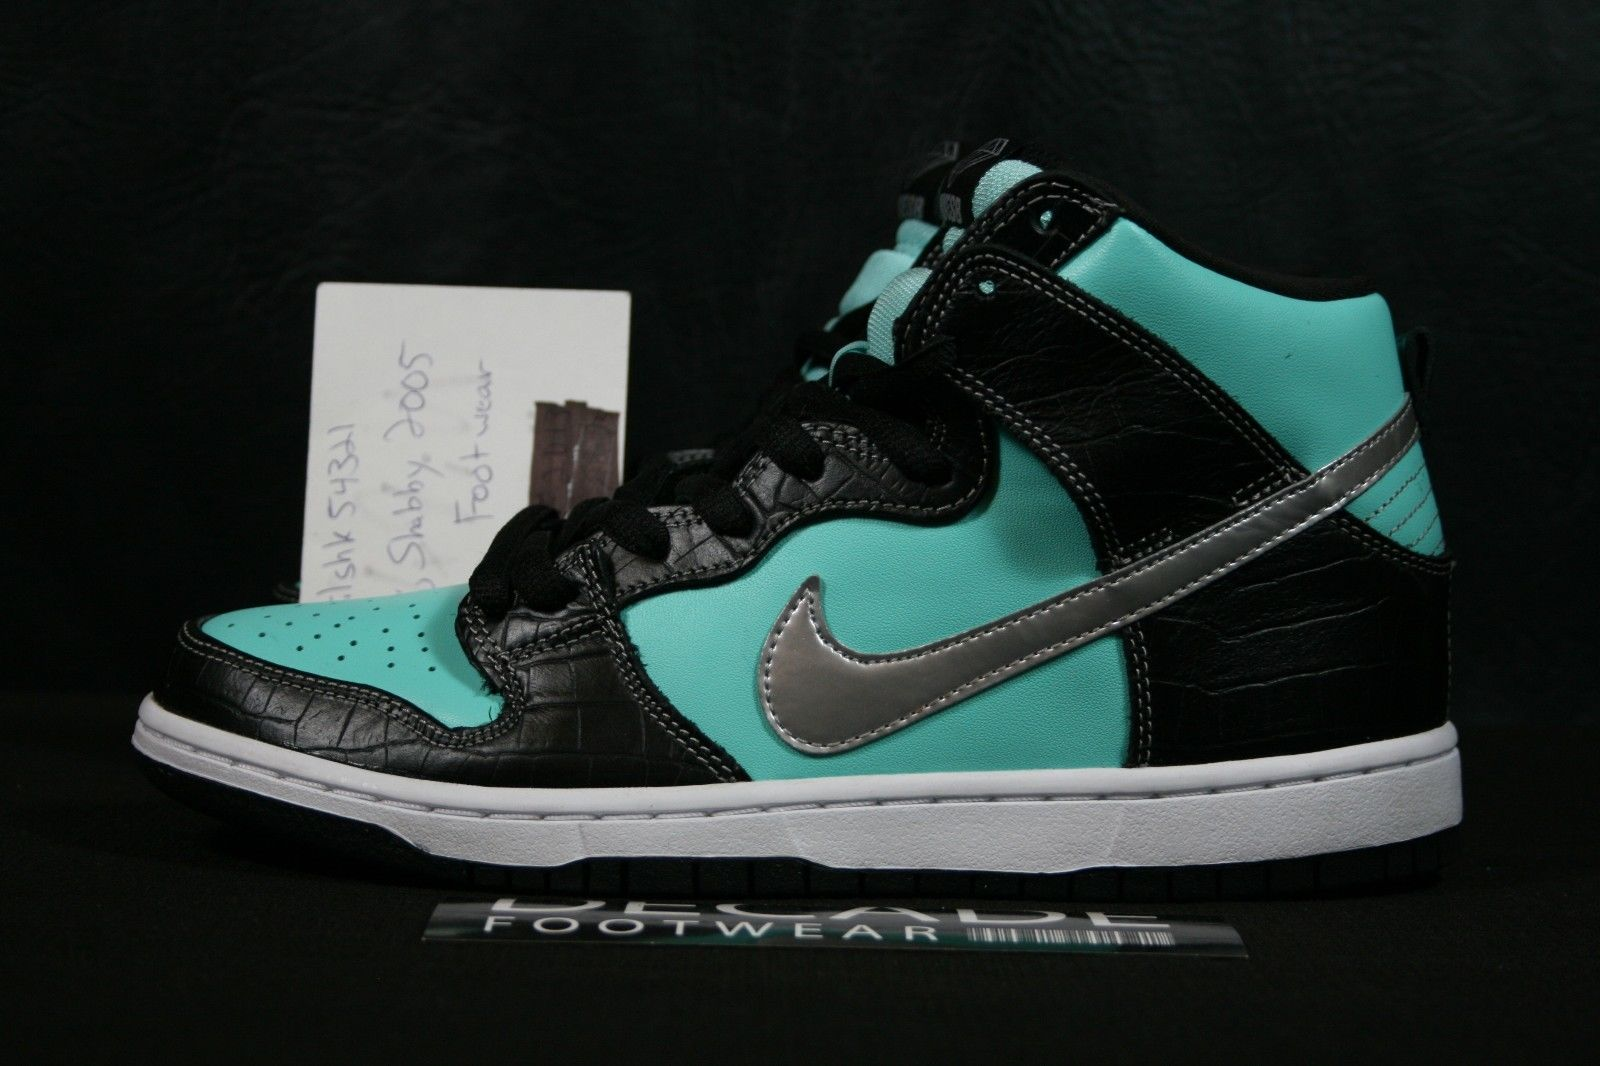 Diamond Supply Co. x Nike SB Dunk High 'Diamond' // New Images